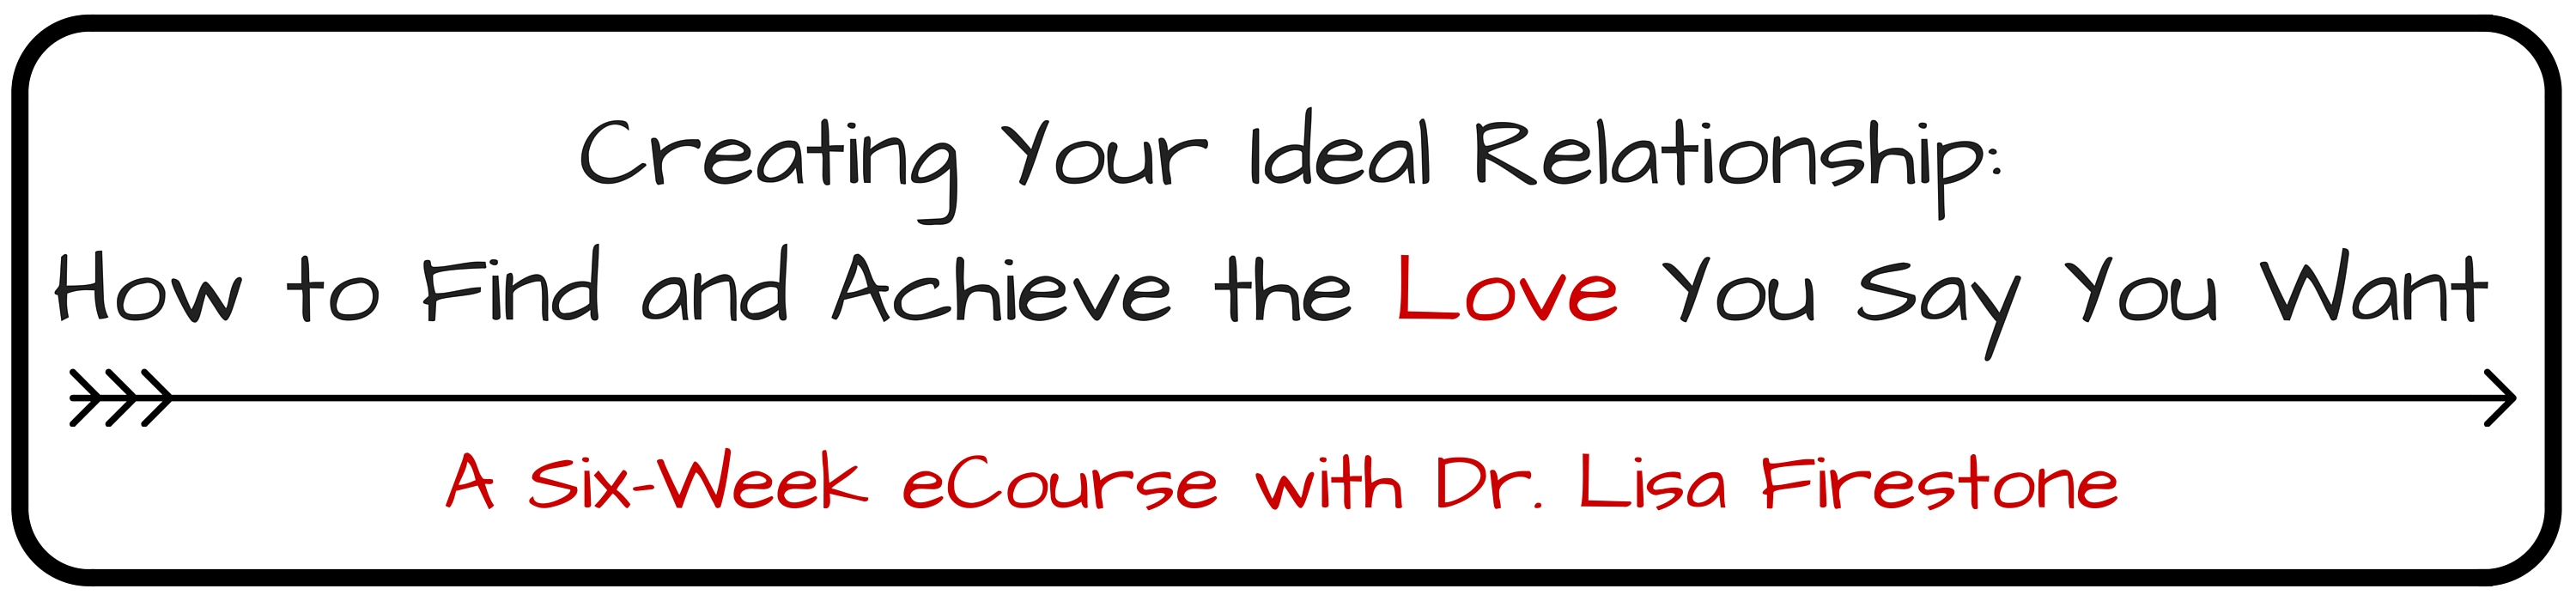 Creating Your Ideal Relationship-How to Find and Achieve the Love You Say You Want